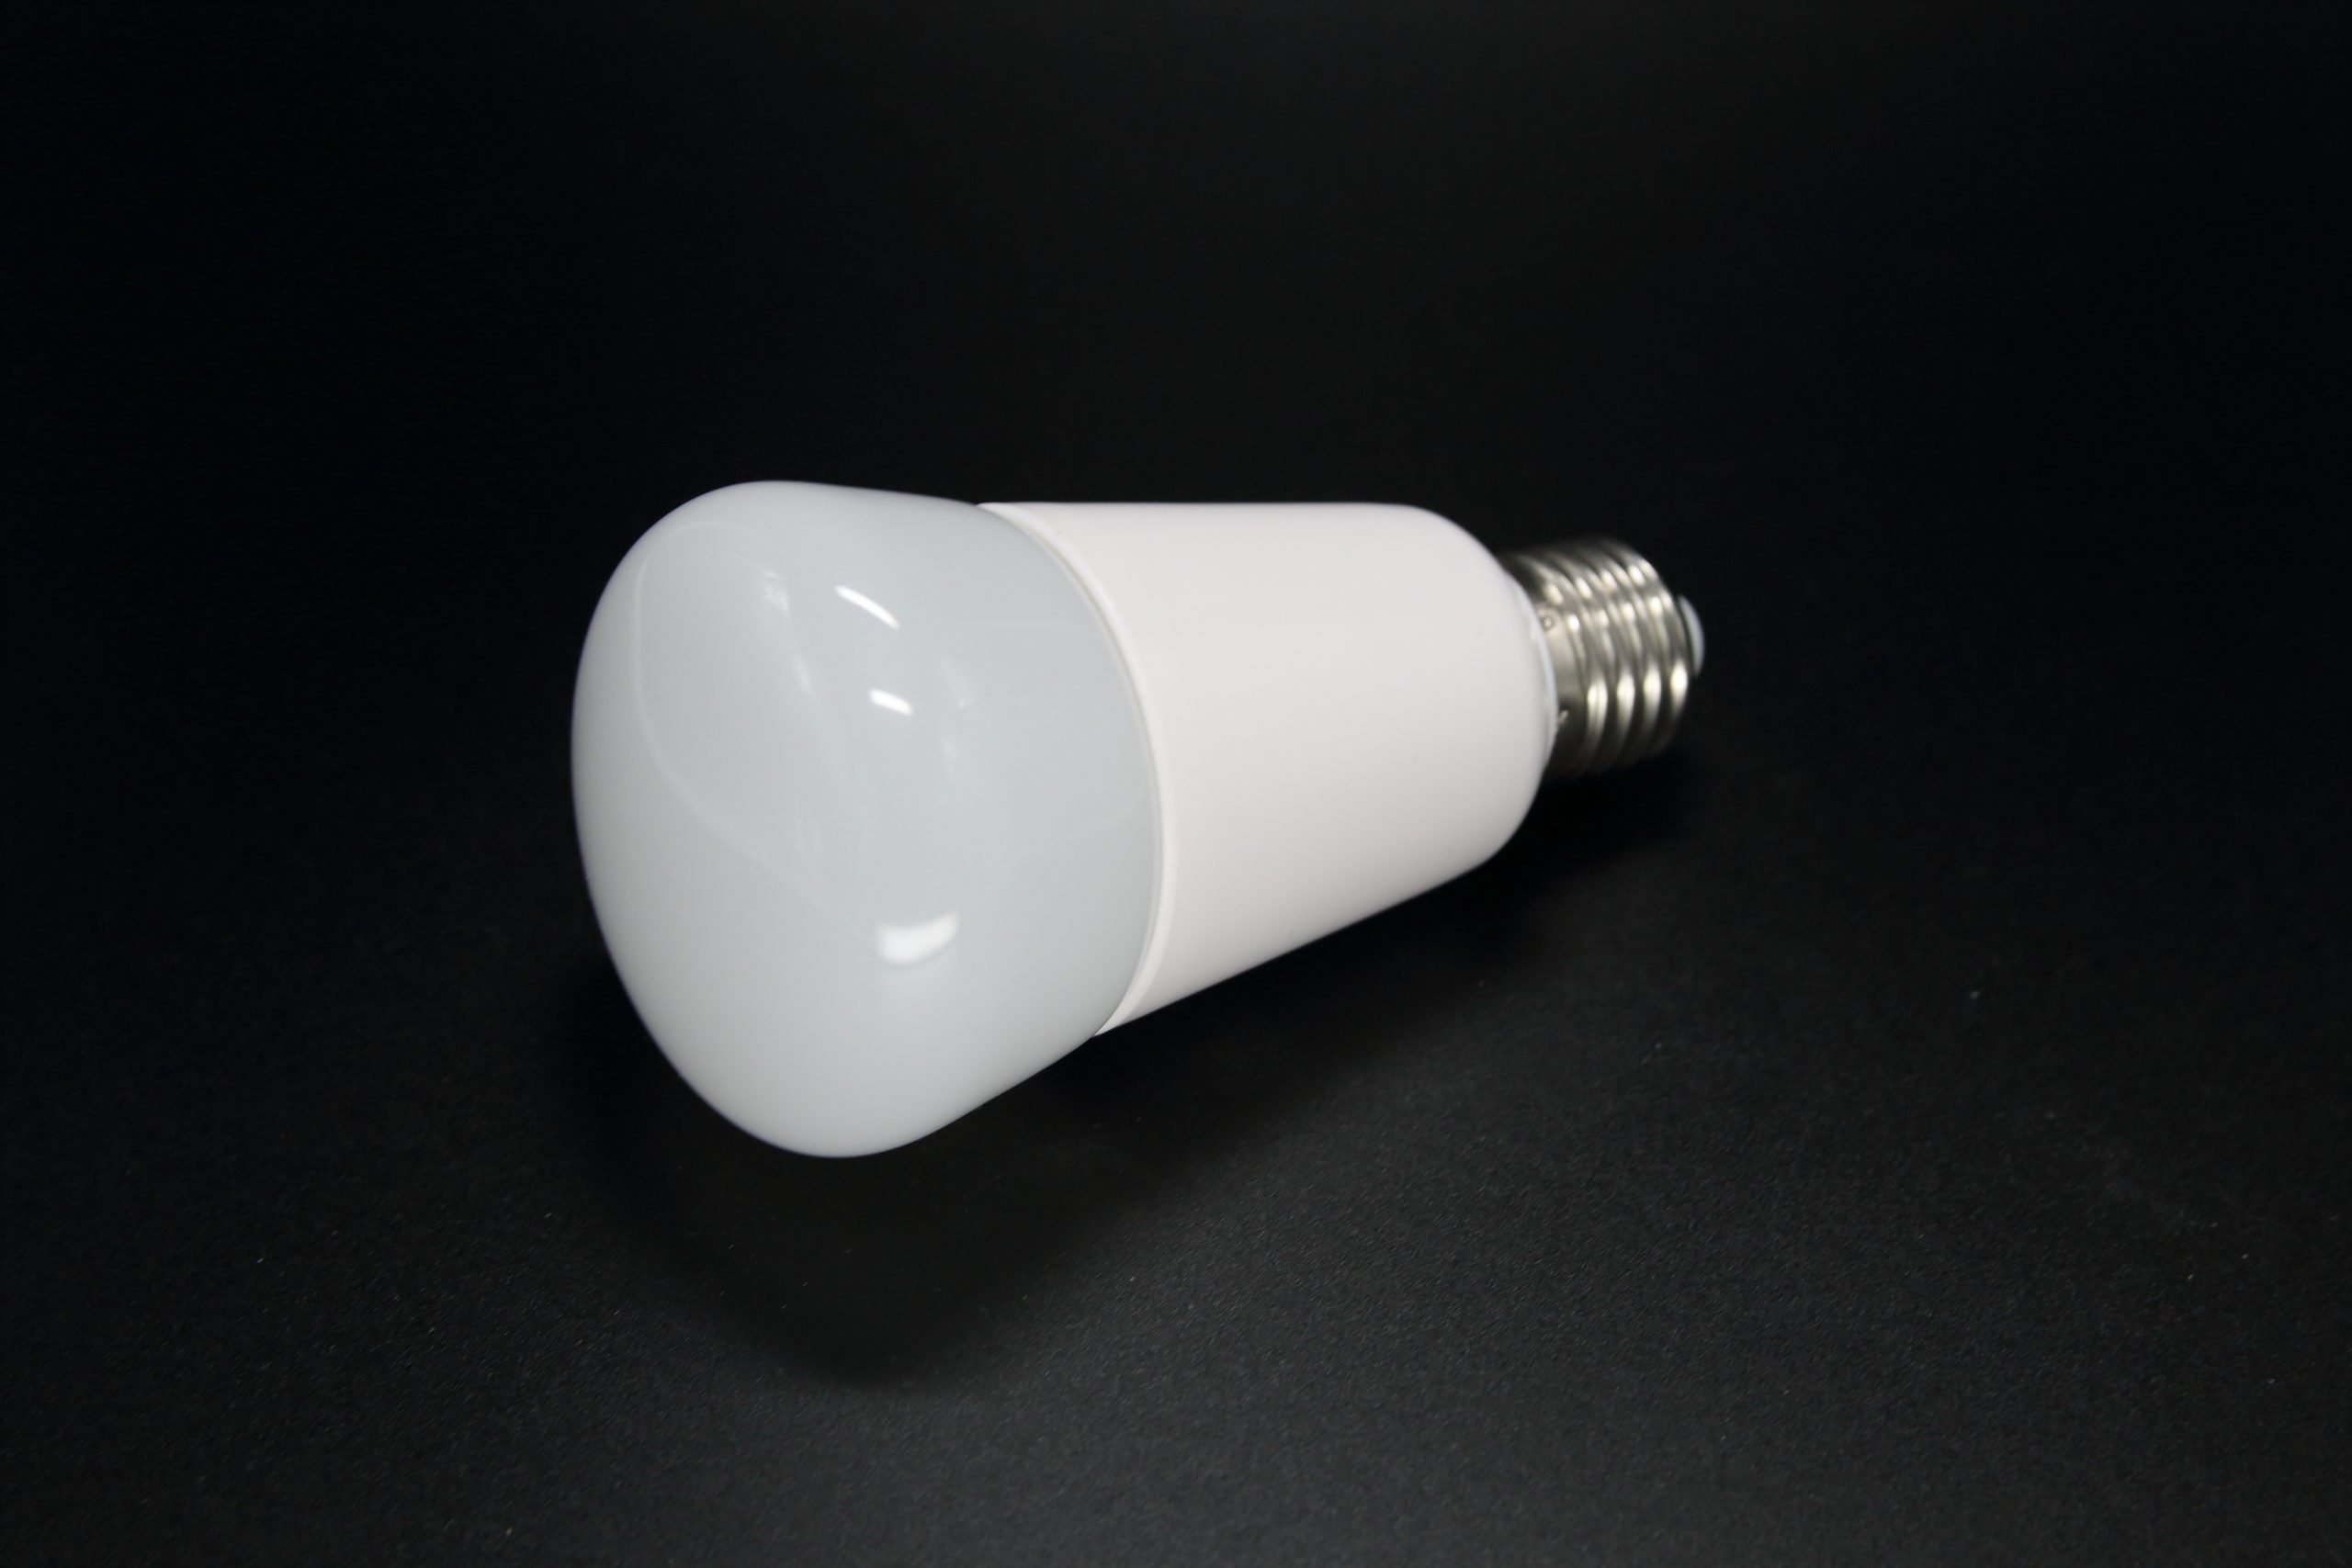 12 Led Light With Motion Sensor Screw Or Magnet Attachment 3 Aa Batteries Incl